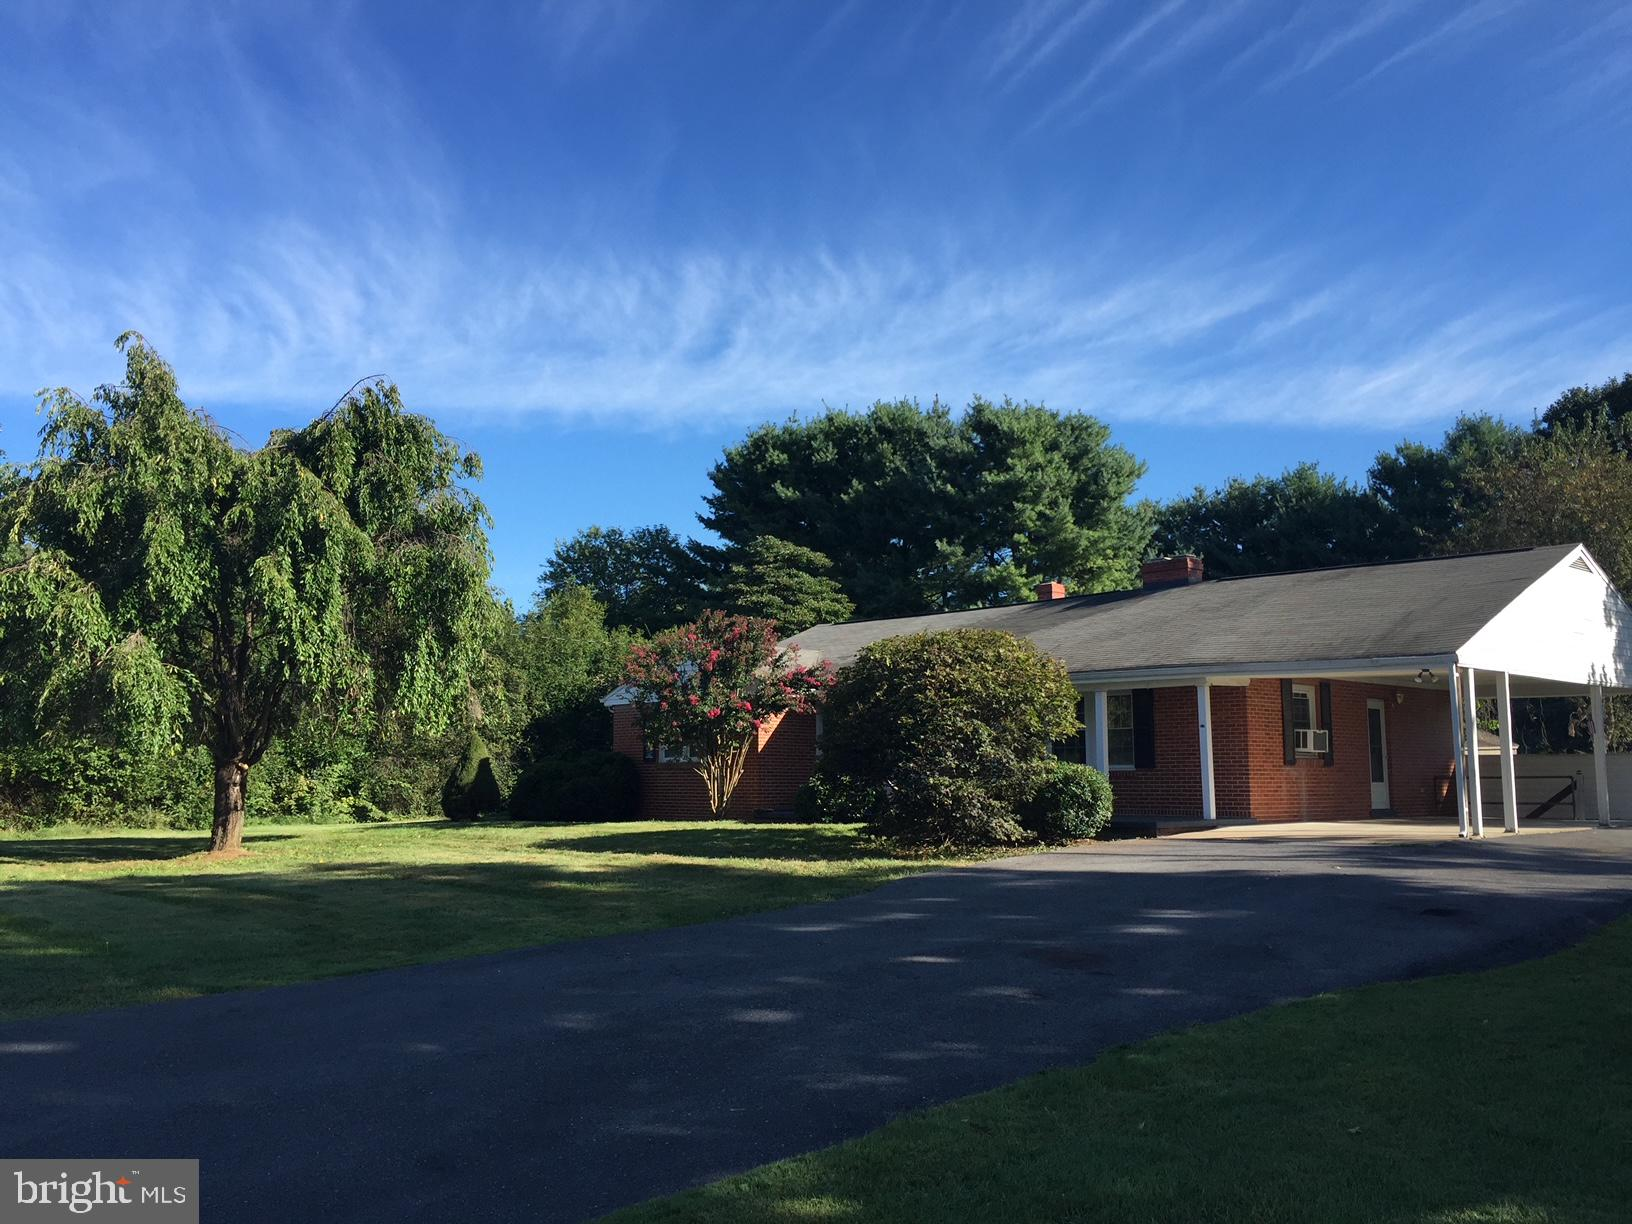 Immaculate 3 BR, 2 BA brick rancher.  Beautiful wood floors throughout the main level, separate DR off eat-in kitchen.  Family room adjacent to DR. 3 bedrooms and 2 full baths, on the main level.   Large finished basement with family room, laundry room, workshop, root cellar, and plenty of storage.  Washer and Dryer downstairs can also be located back up in hallway for main level convenience.  Paved driveway and large carport.  Home boasts a wonderful yard with room for fire pit, garden or what ever your heart desires.  Fireplaces are decorative only.  Note:  Septic system and public water.   Class III rental tax.  Ready for your immediate occupancy.